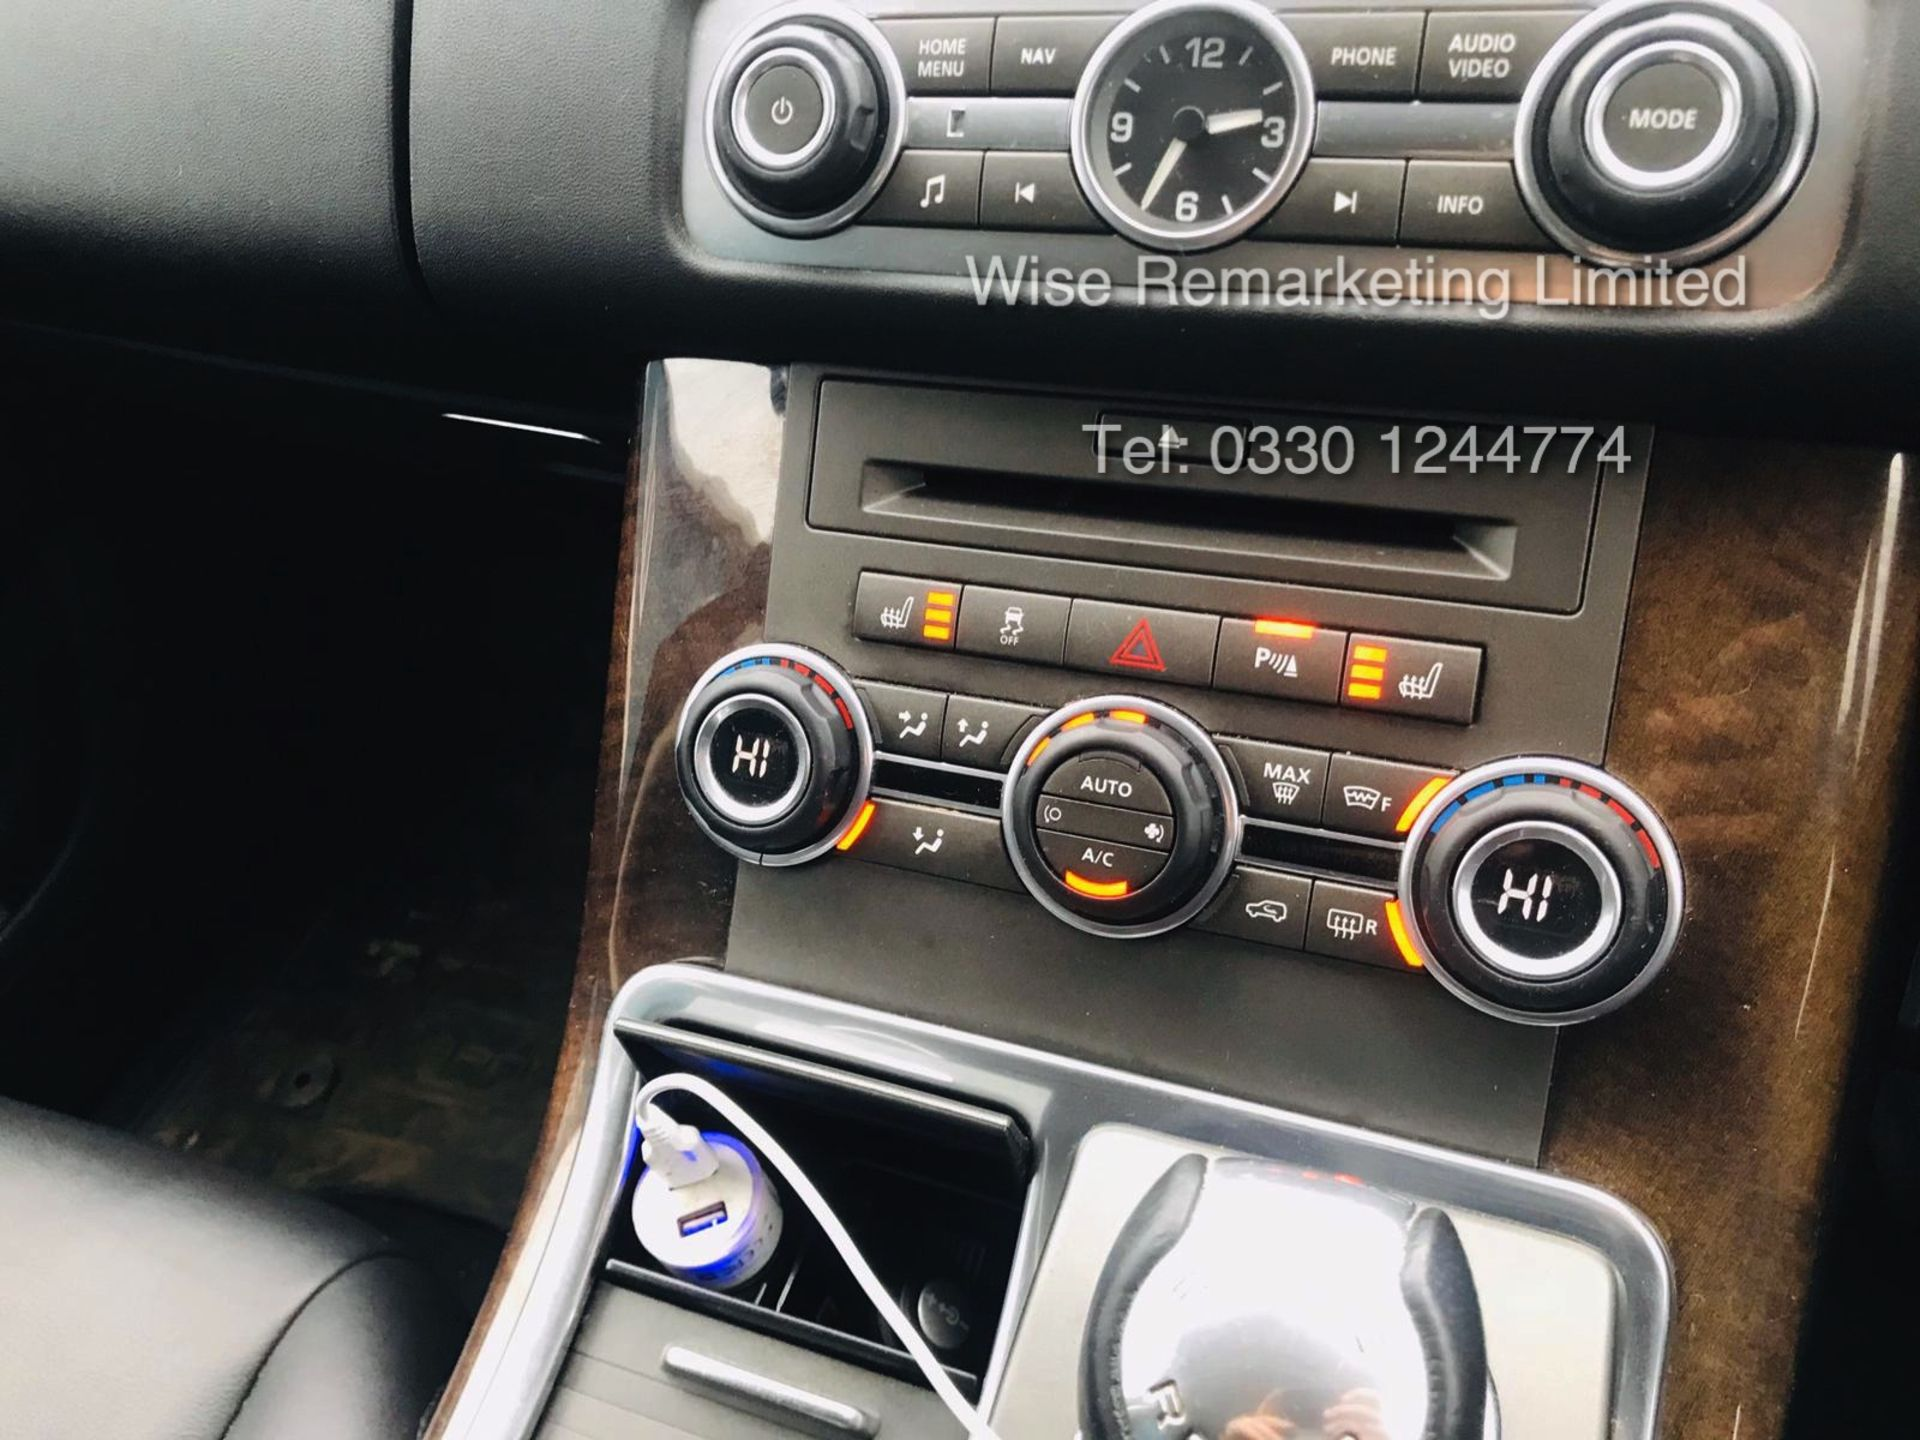 Range Rover Sport SE 3.0 TDV6 Automatic - 2011 11 Reg - 1 Keeper From New - Service History - Image 7 of 21